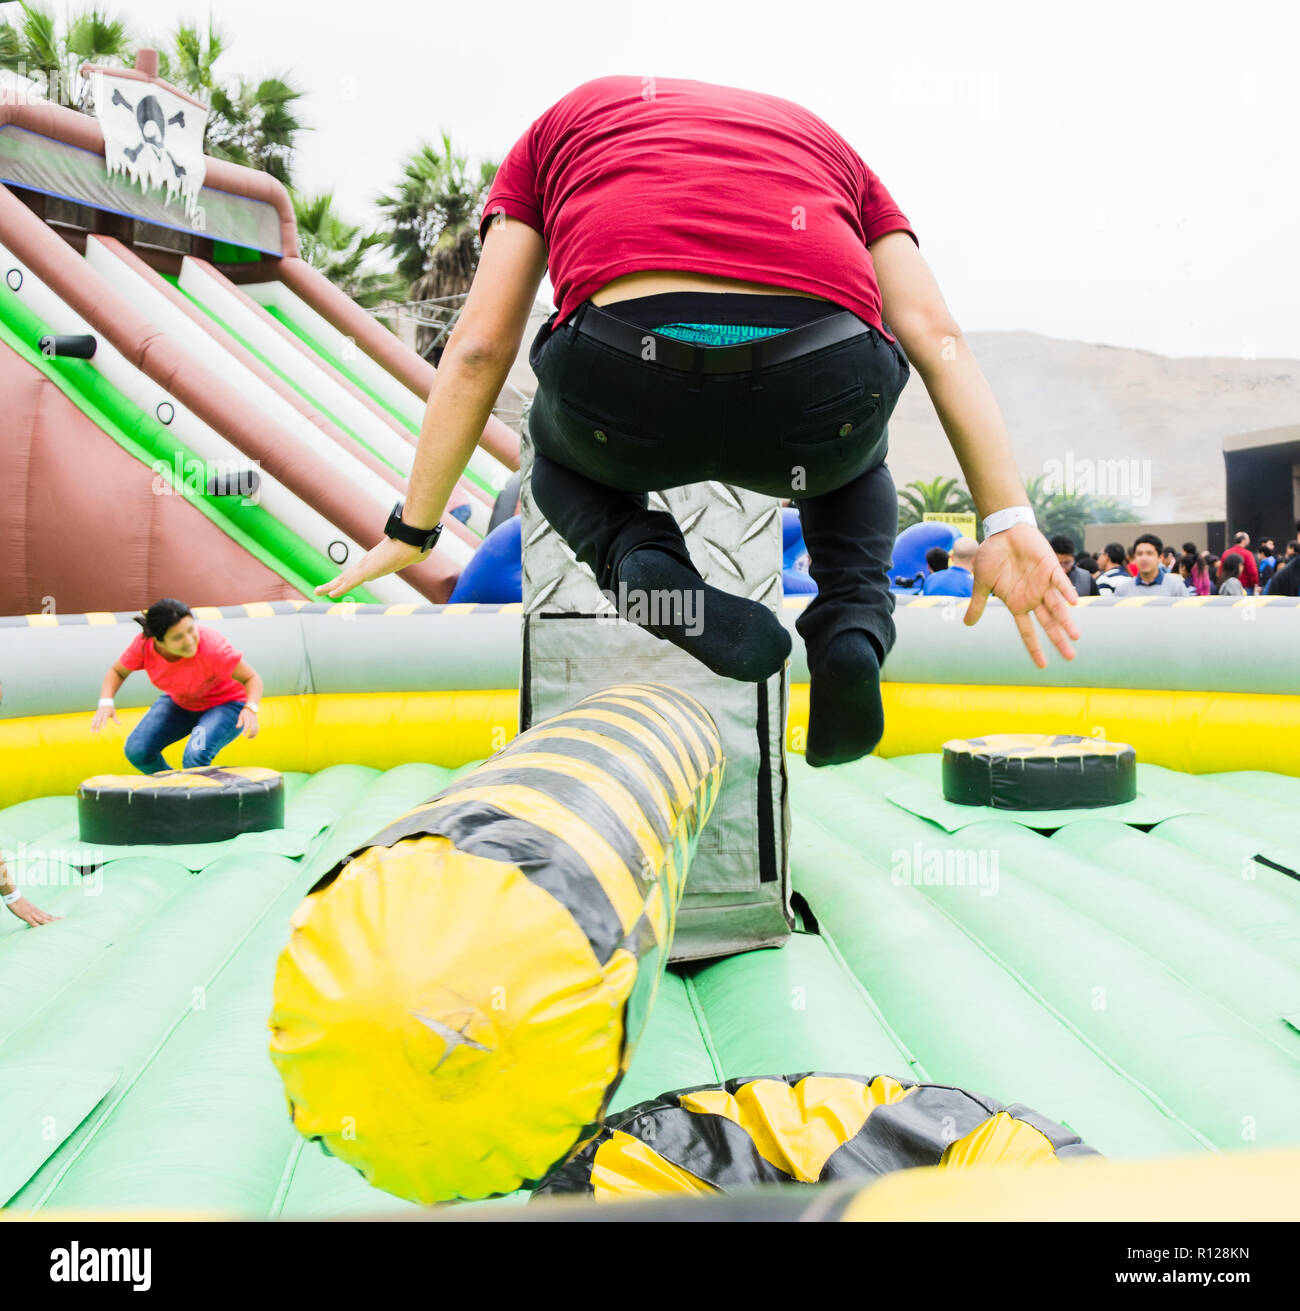 Young man jumping and dodging an obstacle in a game. - Stock Image